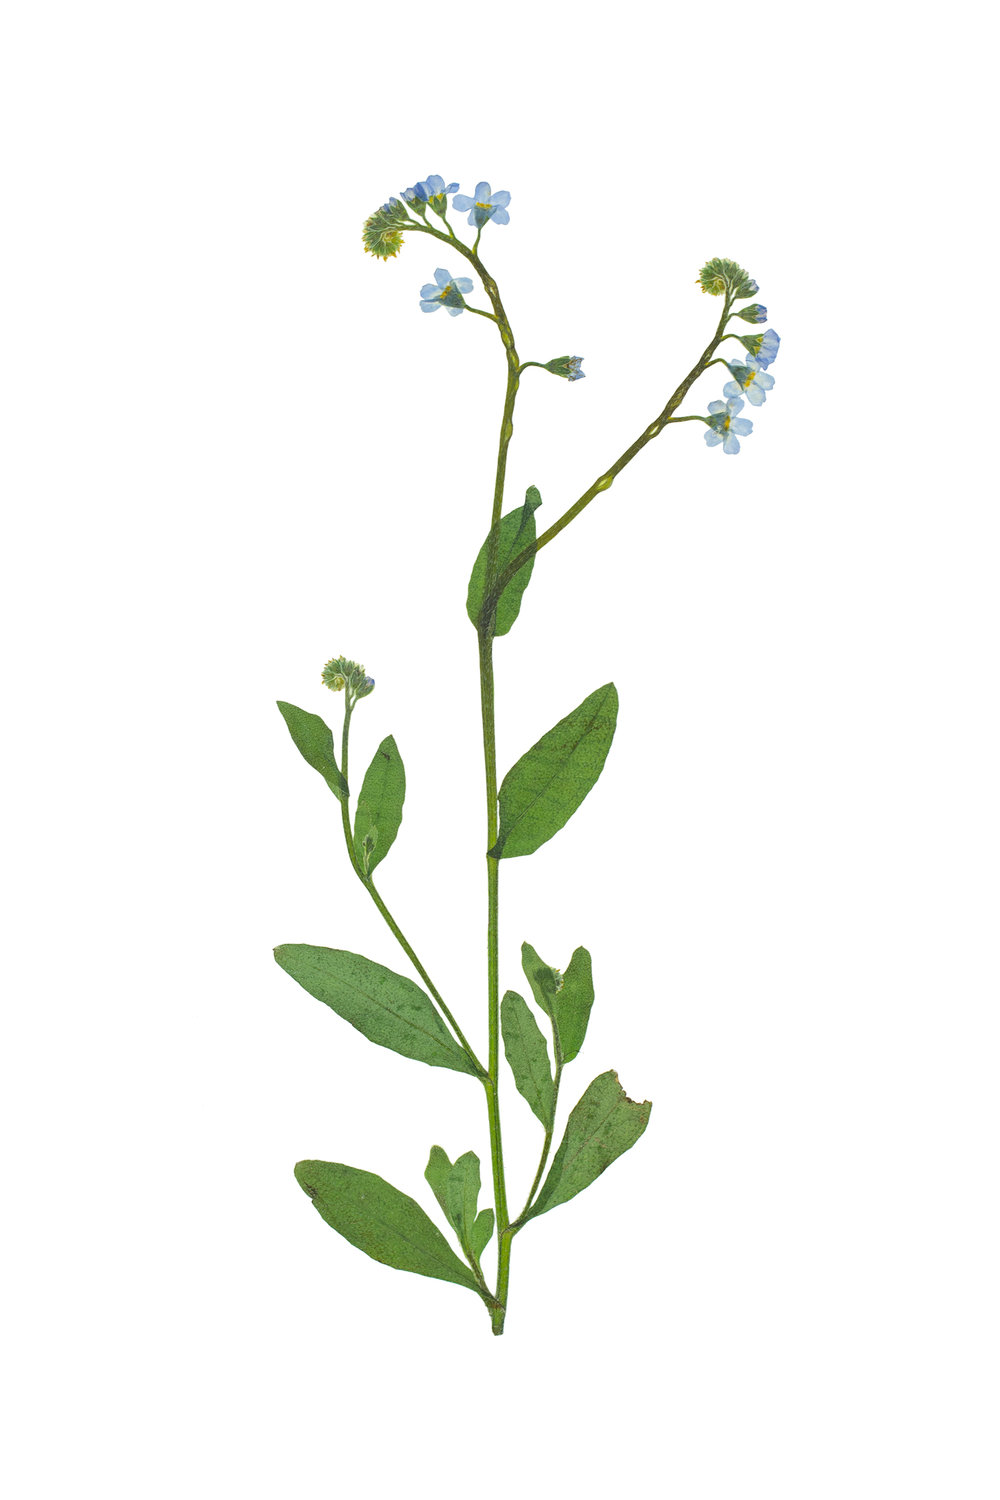 Myosotis scorpioides / True Forget-Me-Not